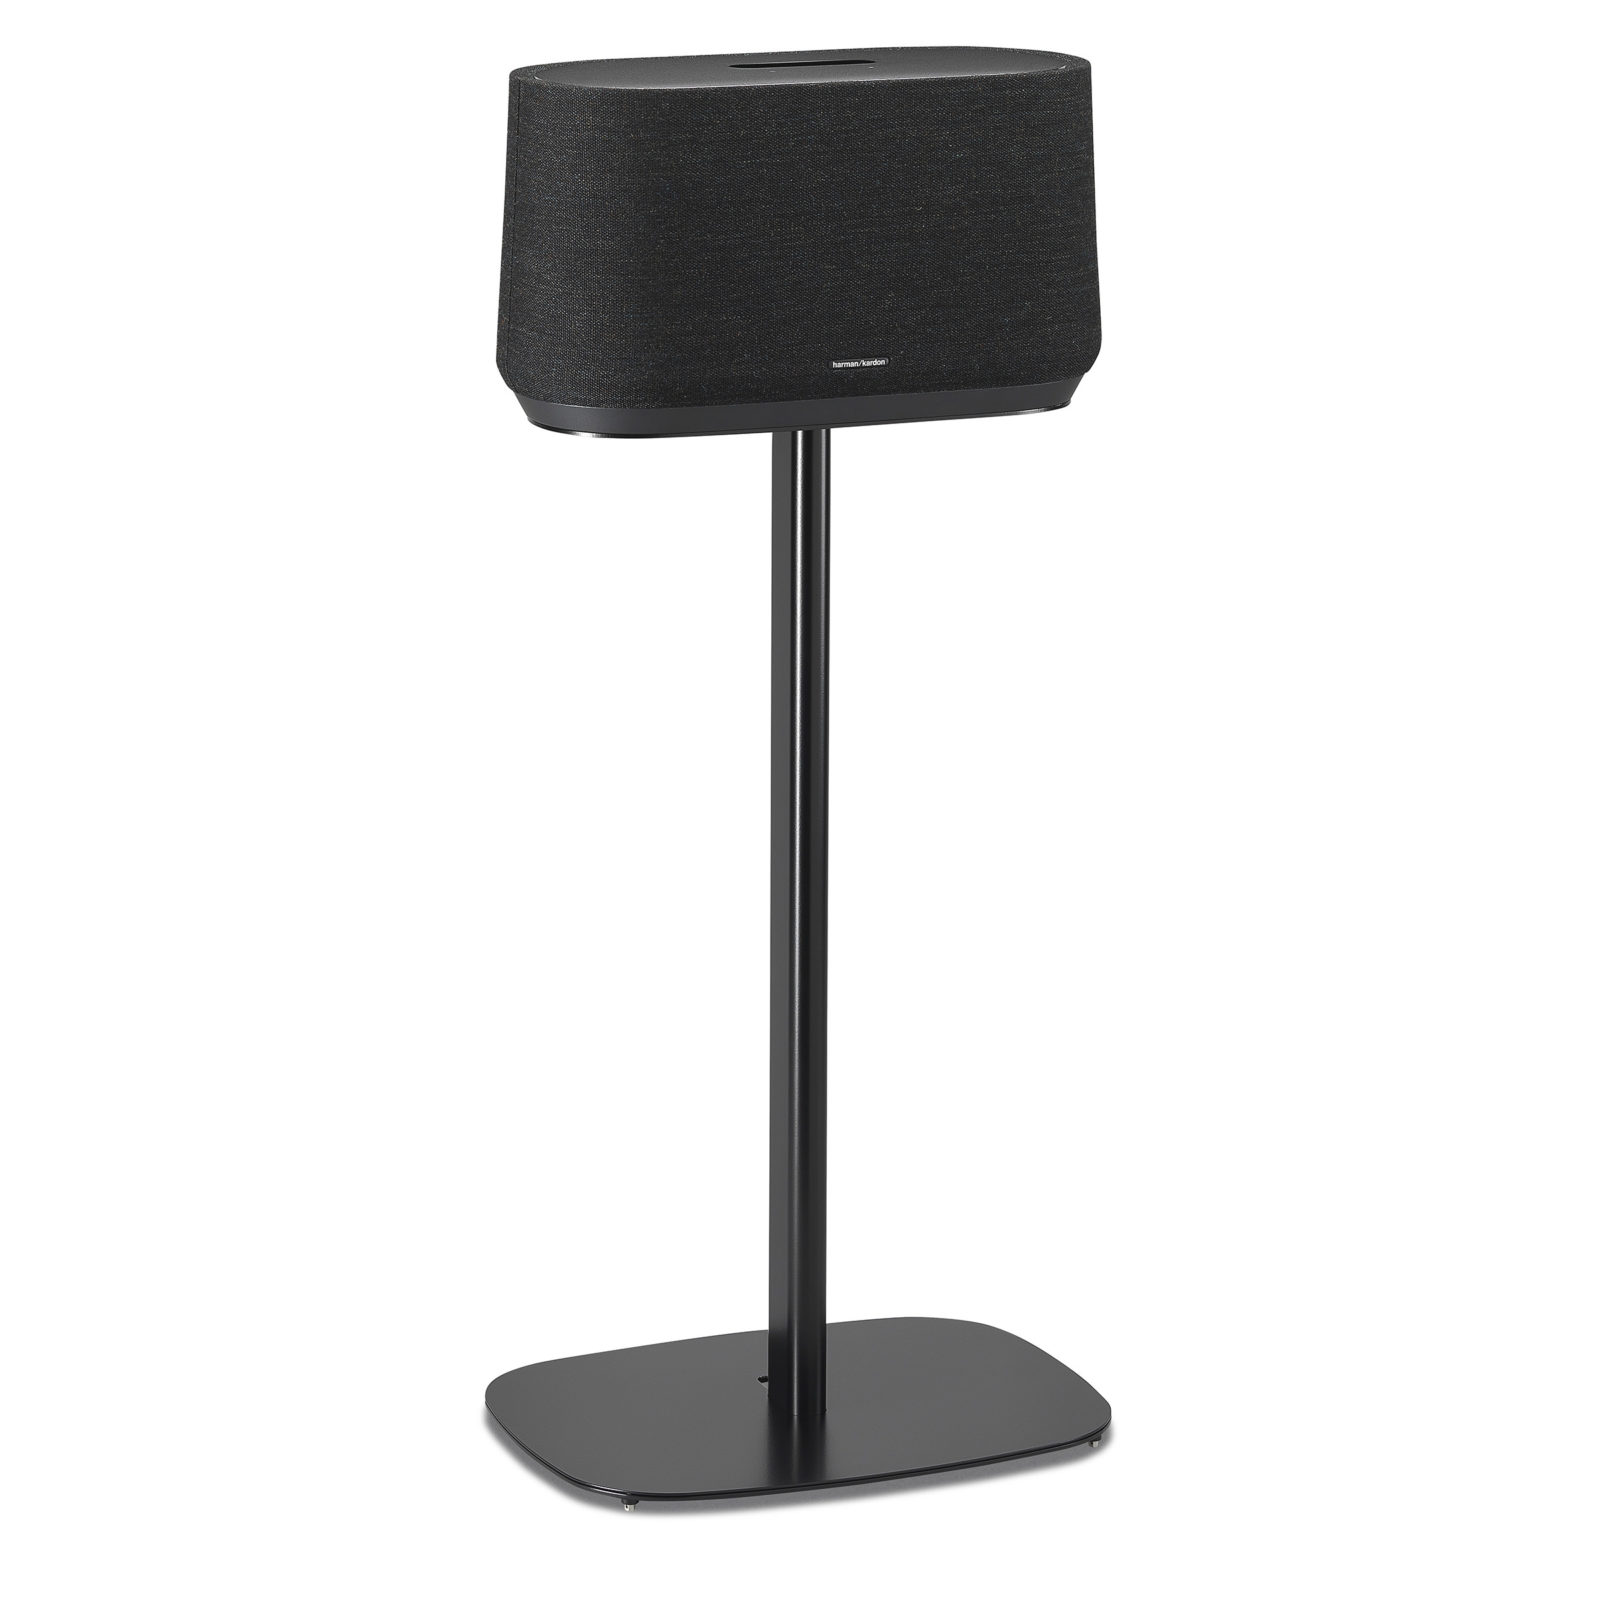 Harman Kardon Citation 500 standaard zwart 6